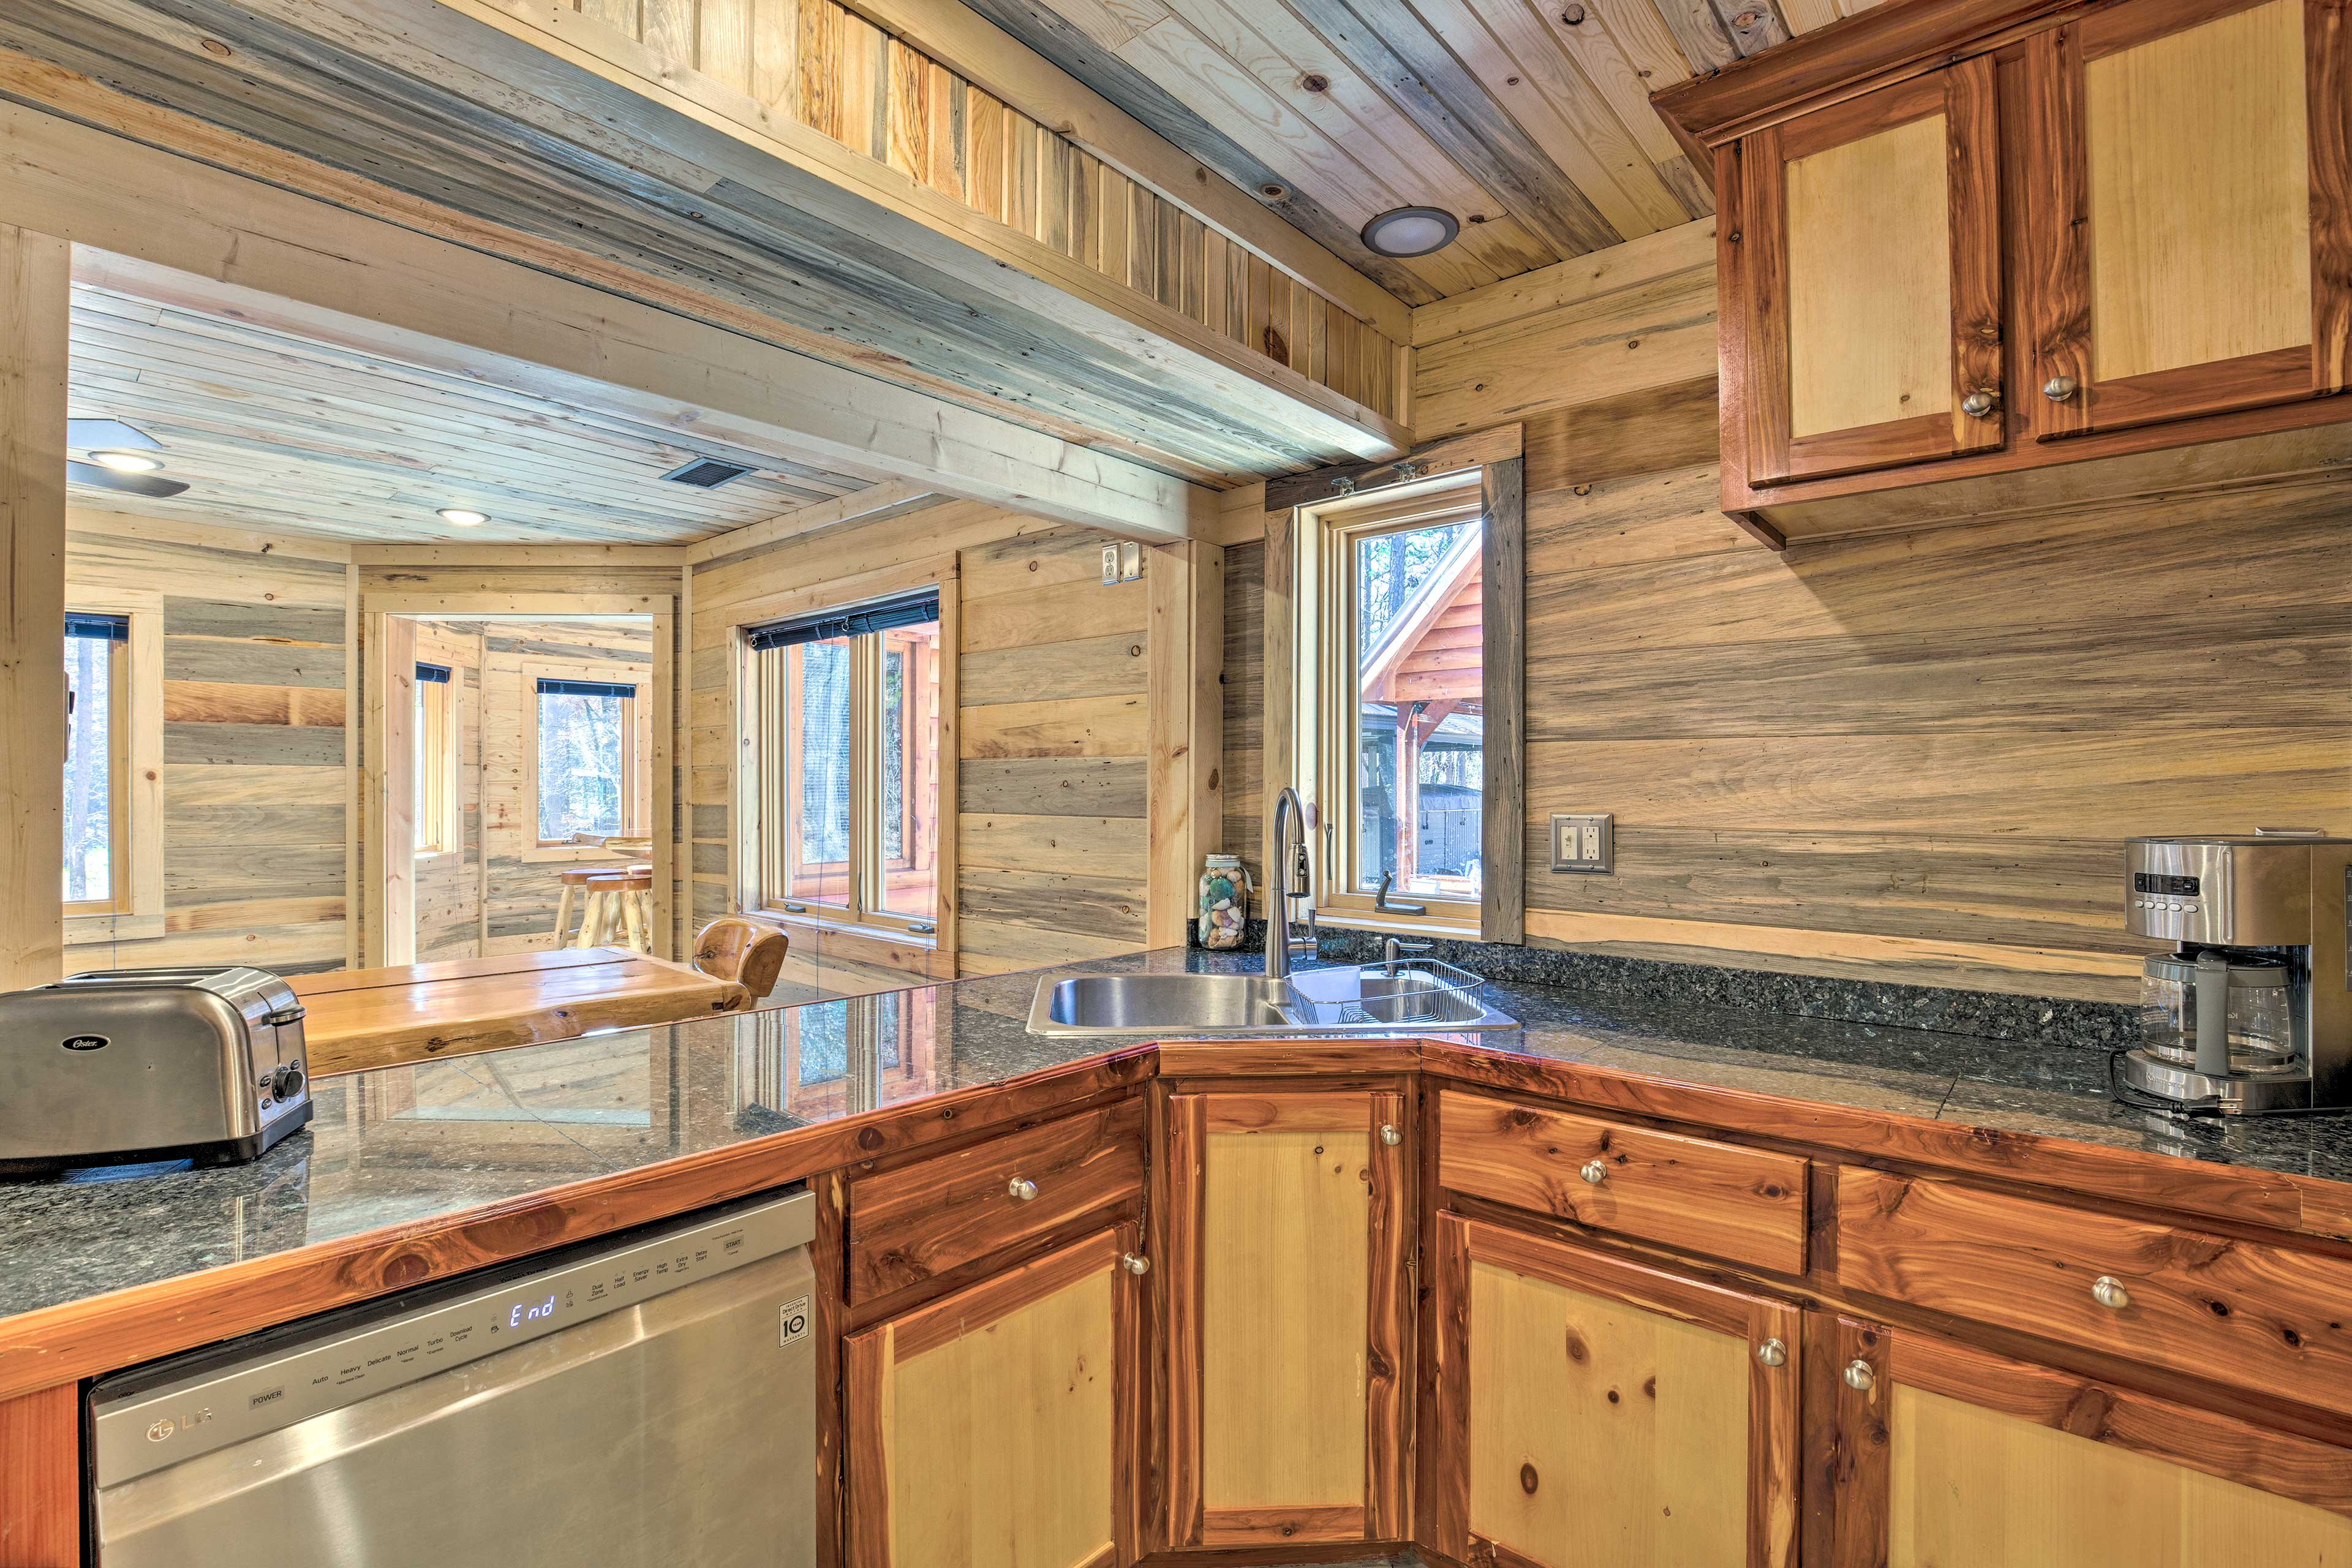 Wraparound counters and a pass-through window outfit the fully equipped kitchen.